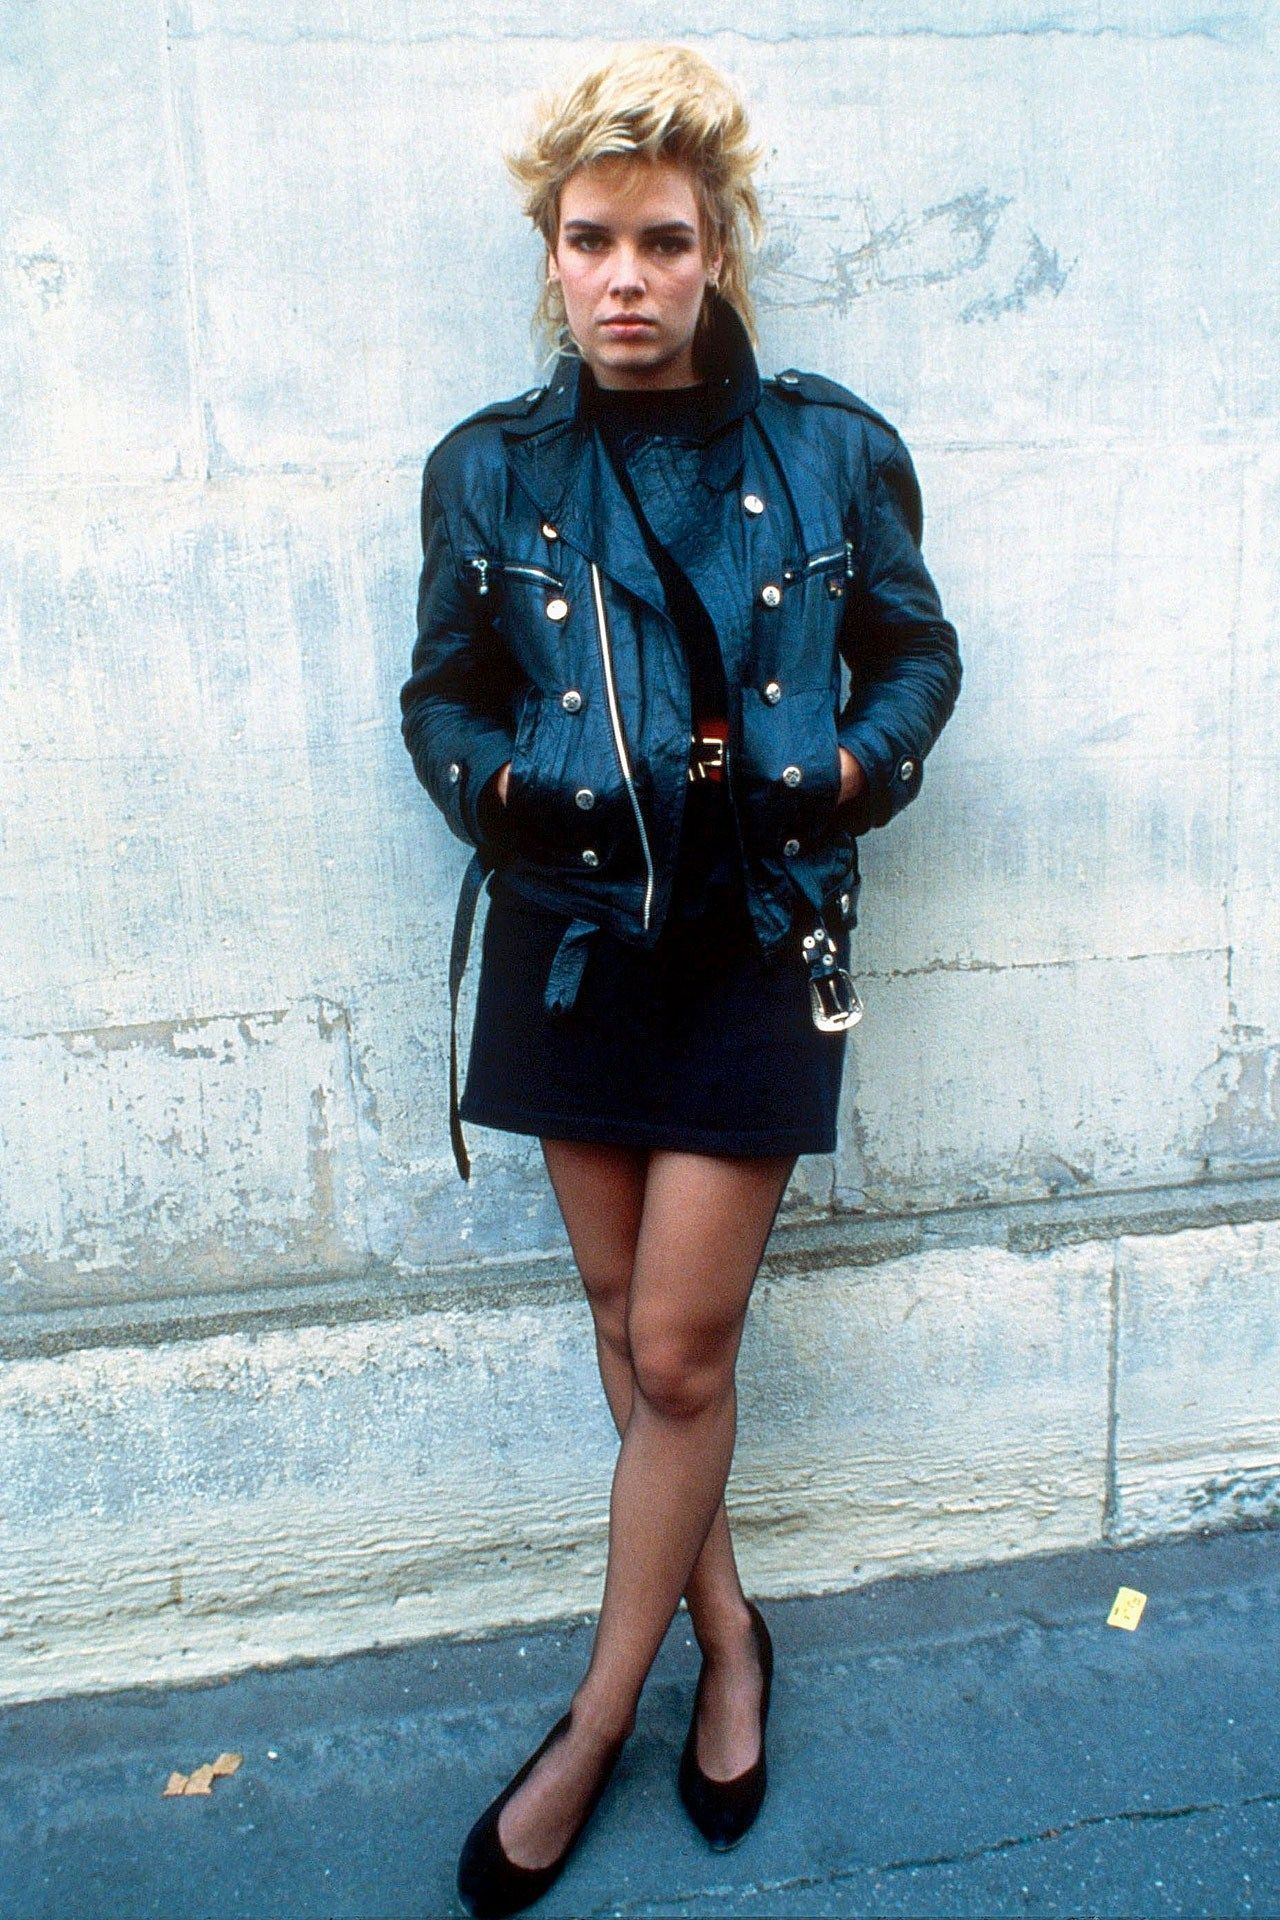 The best 80s style icons to inspire your own retrospective yet very modern wardrobe 80s - 80er damenmode ...